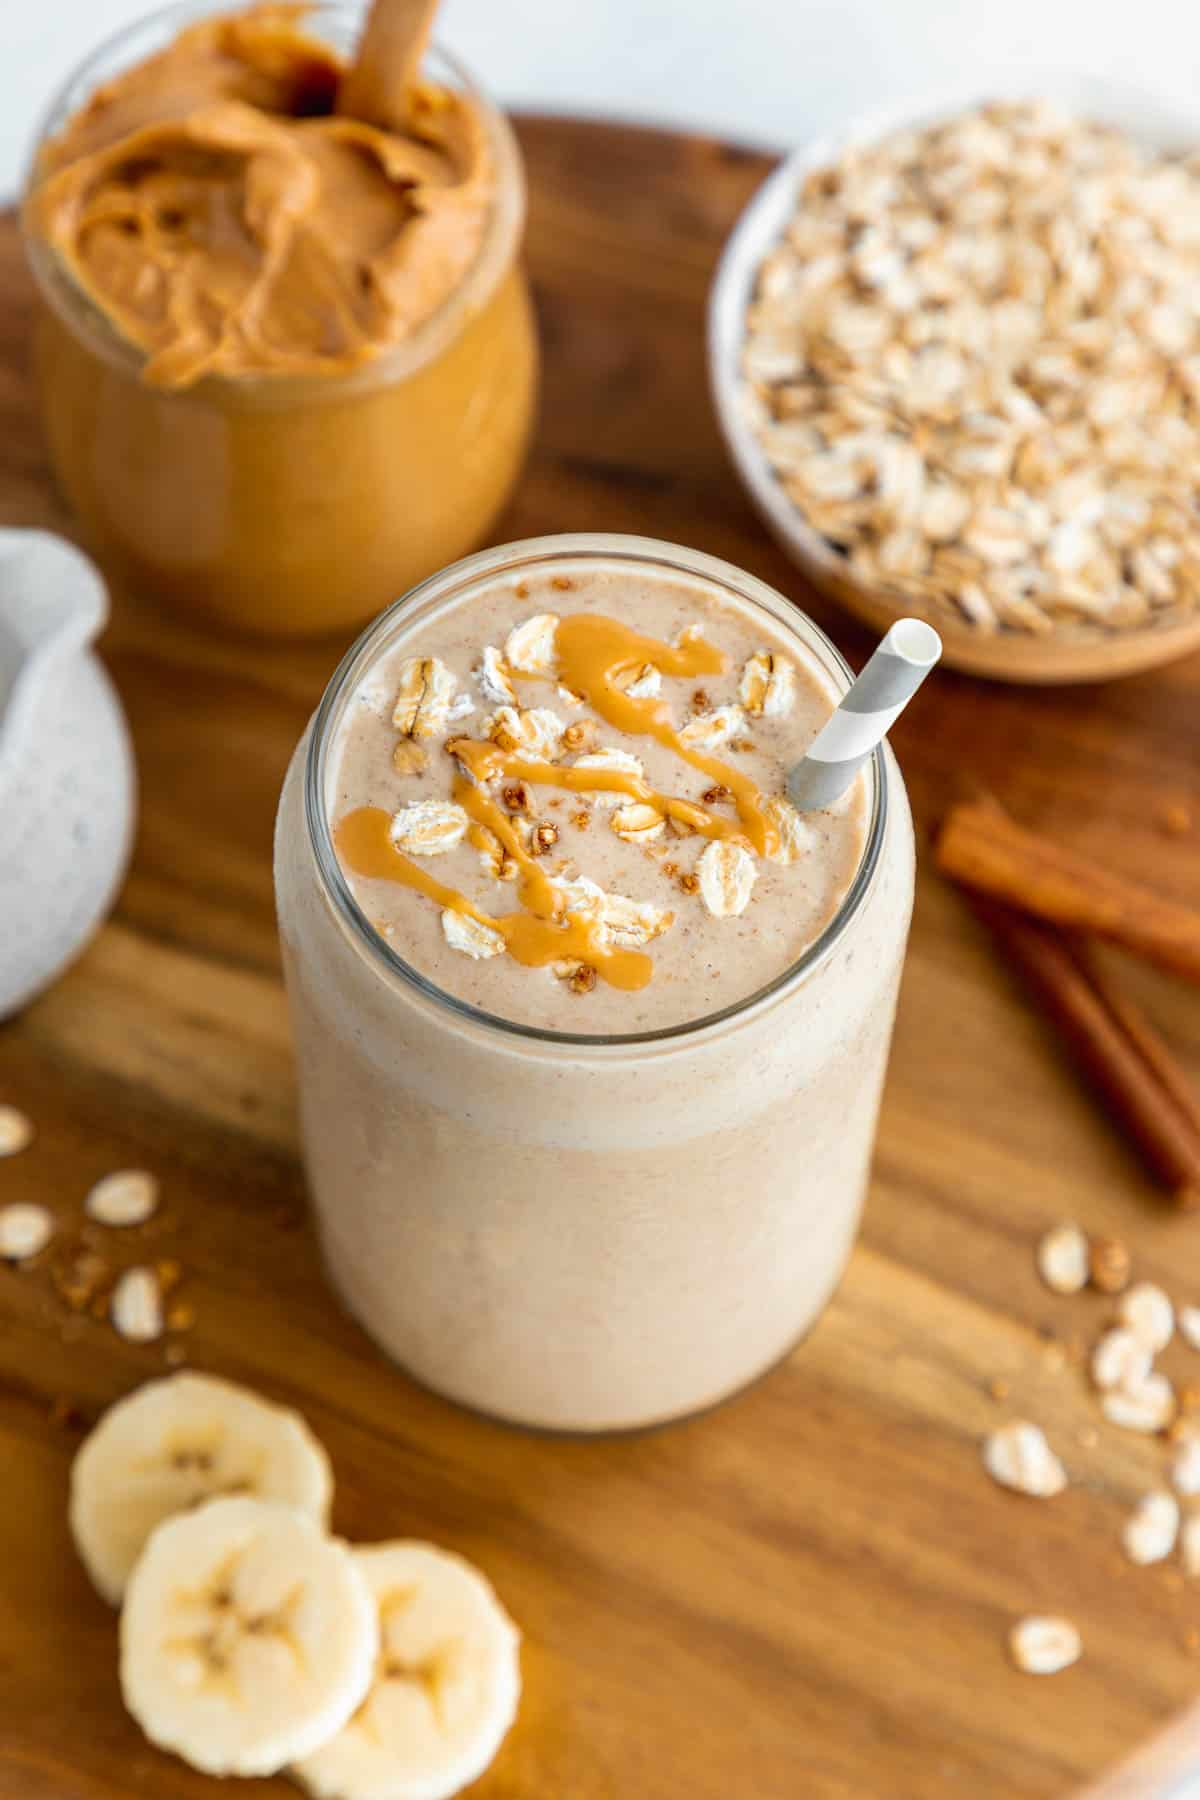 an overhead photo of an oatmeal smoothie with peanut butter